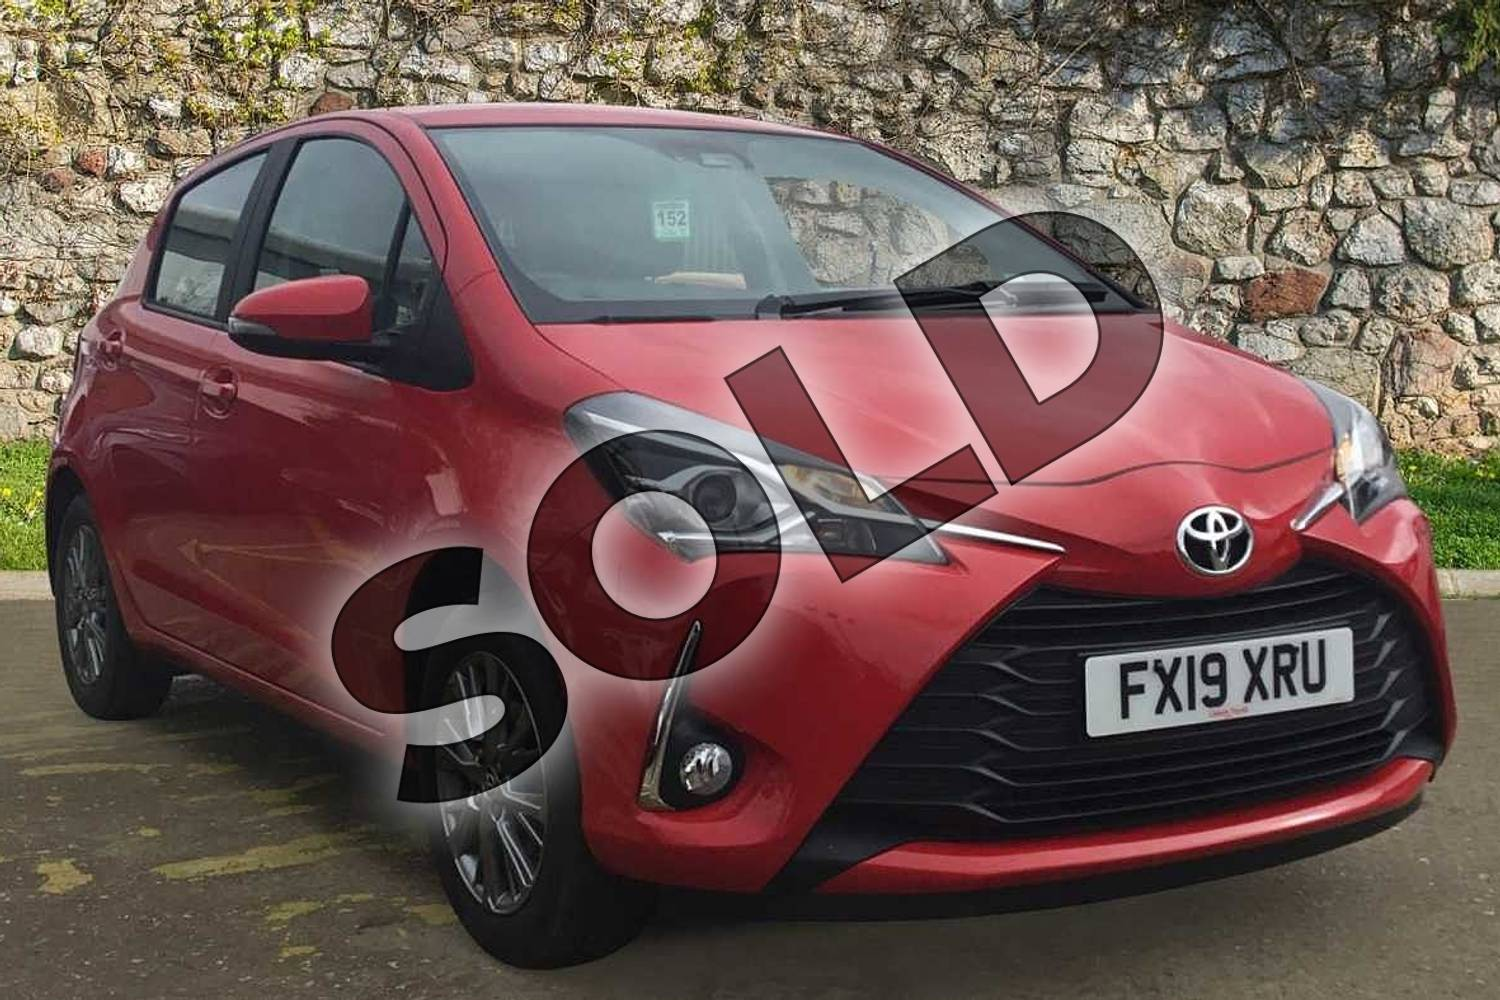 2019 Toyota Yaris Hatchback 1.0 (72) VVT-i Icon 5dr in Chilli Red at Listers Toyota Boston